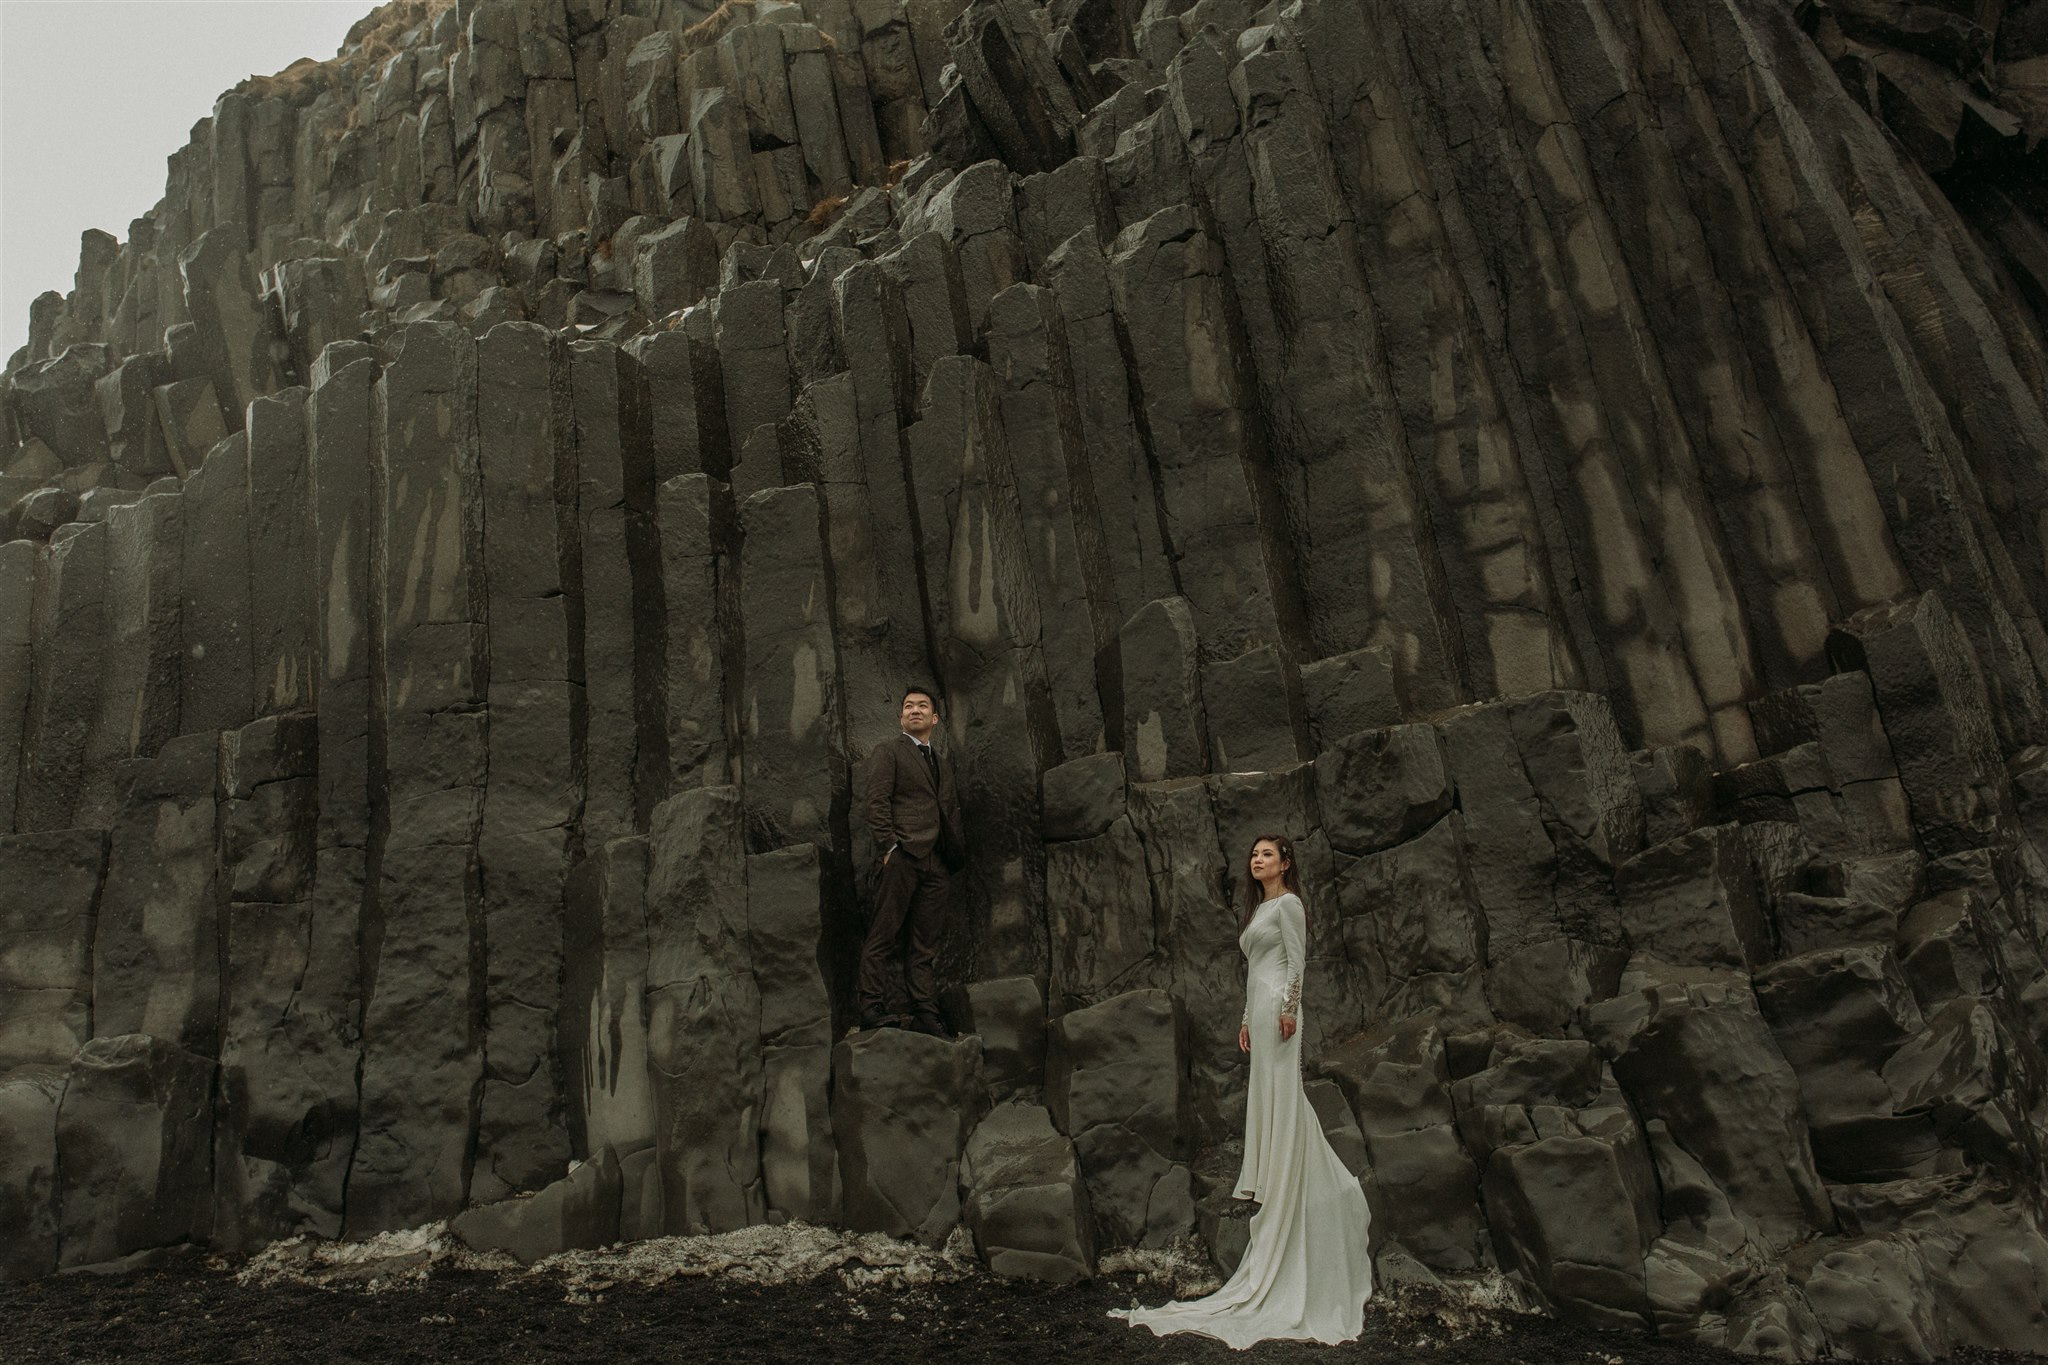 Bride and groom posing for photos taken by Steph Zakas Photography, in front of rocks during Iceland elopement.